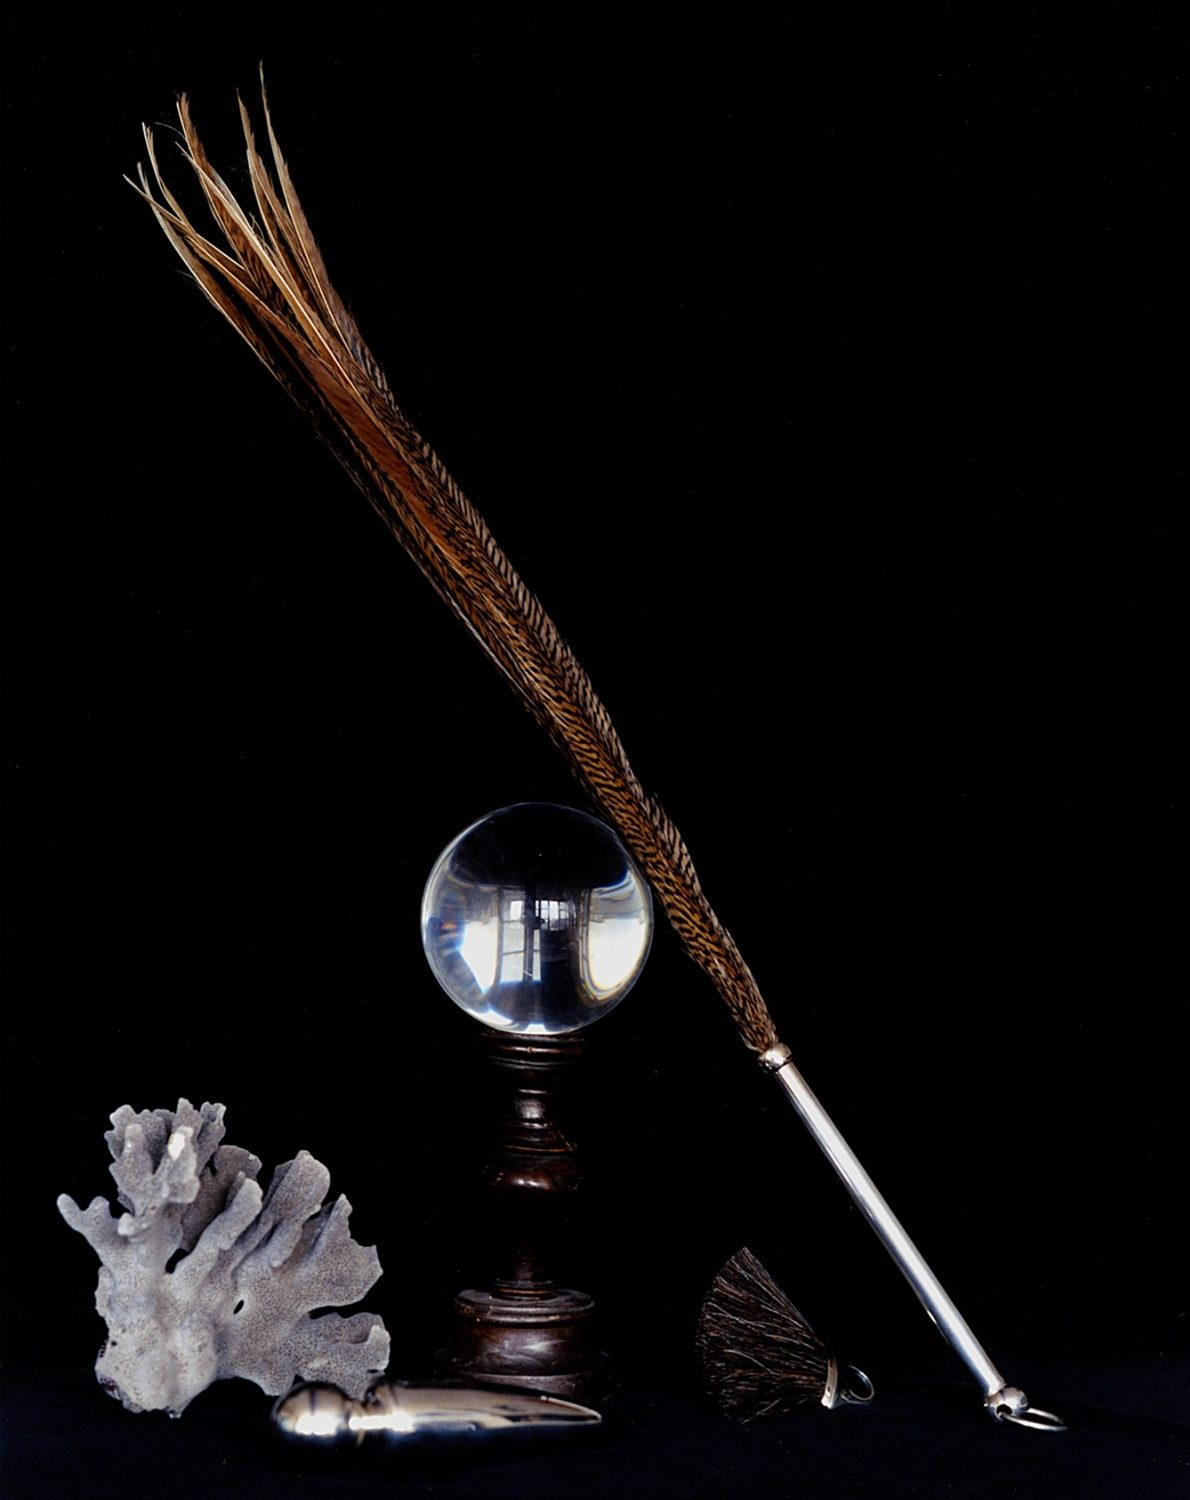 Still life with a long feather